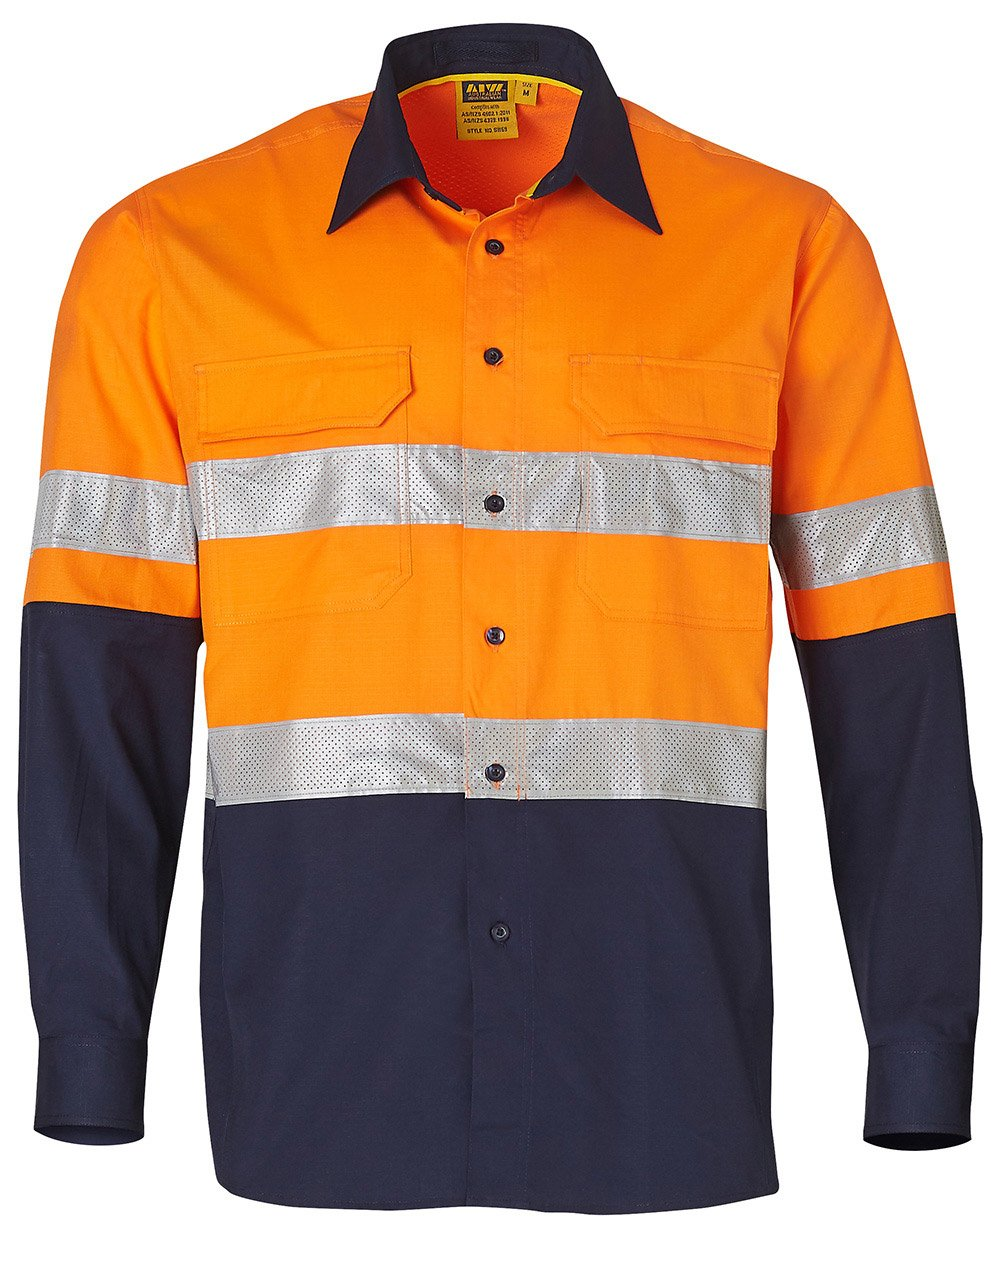 145 GSM Cotton Rip-Stop L/S Safety Shirt